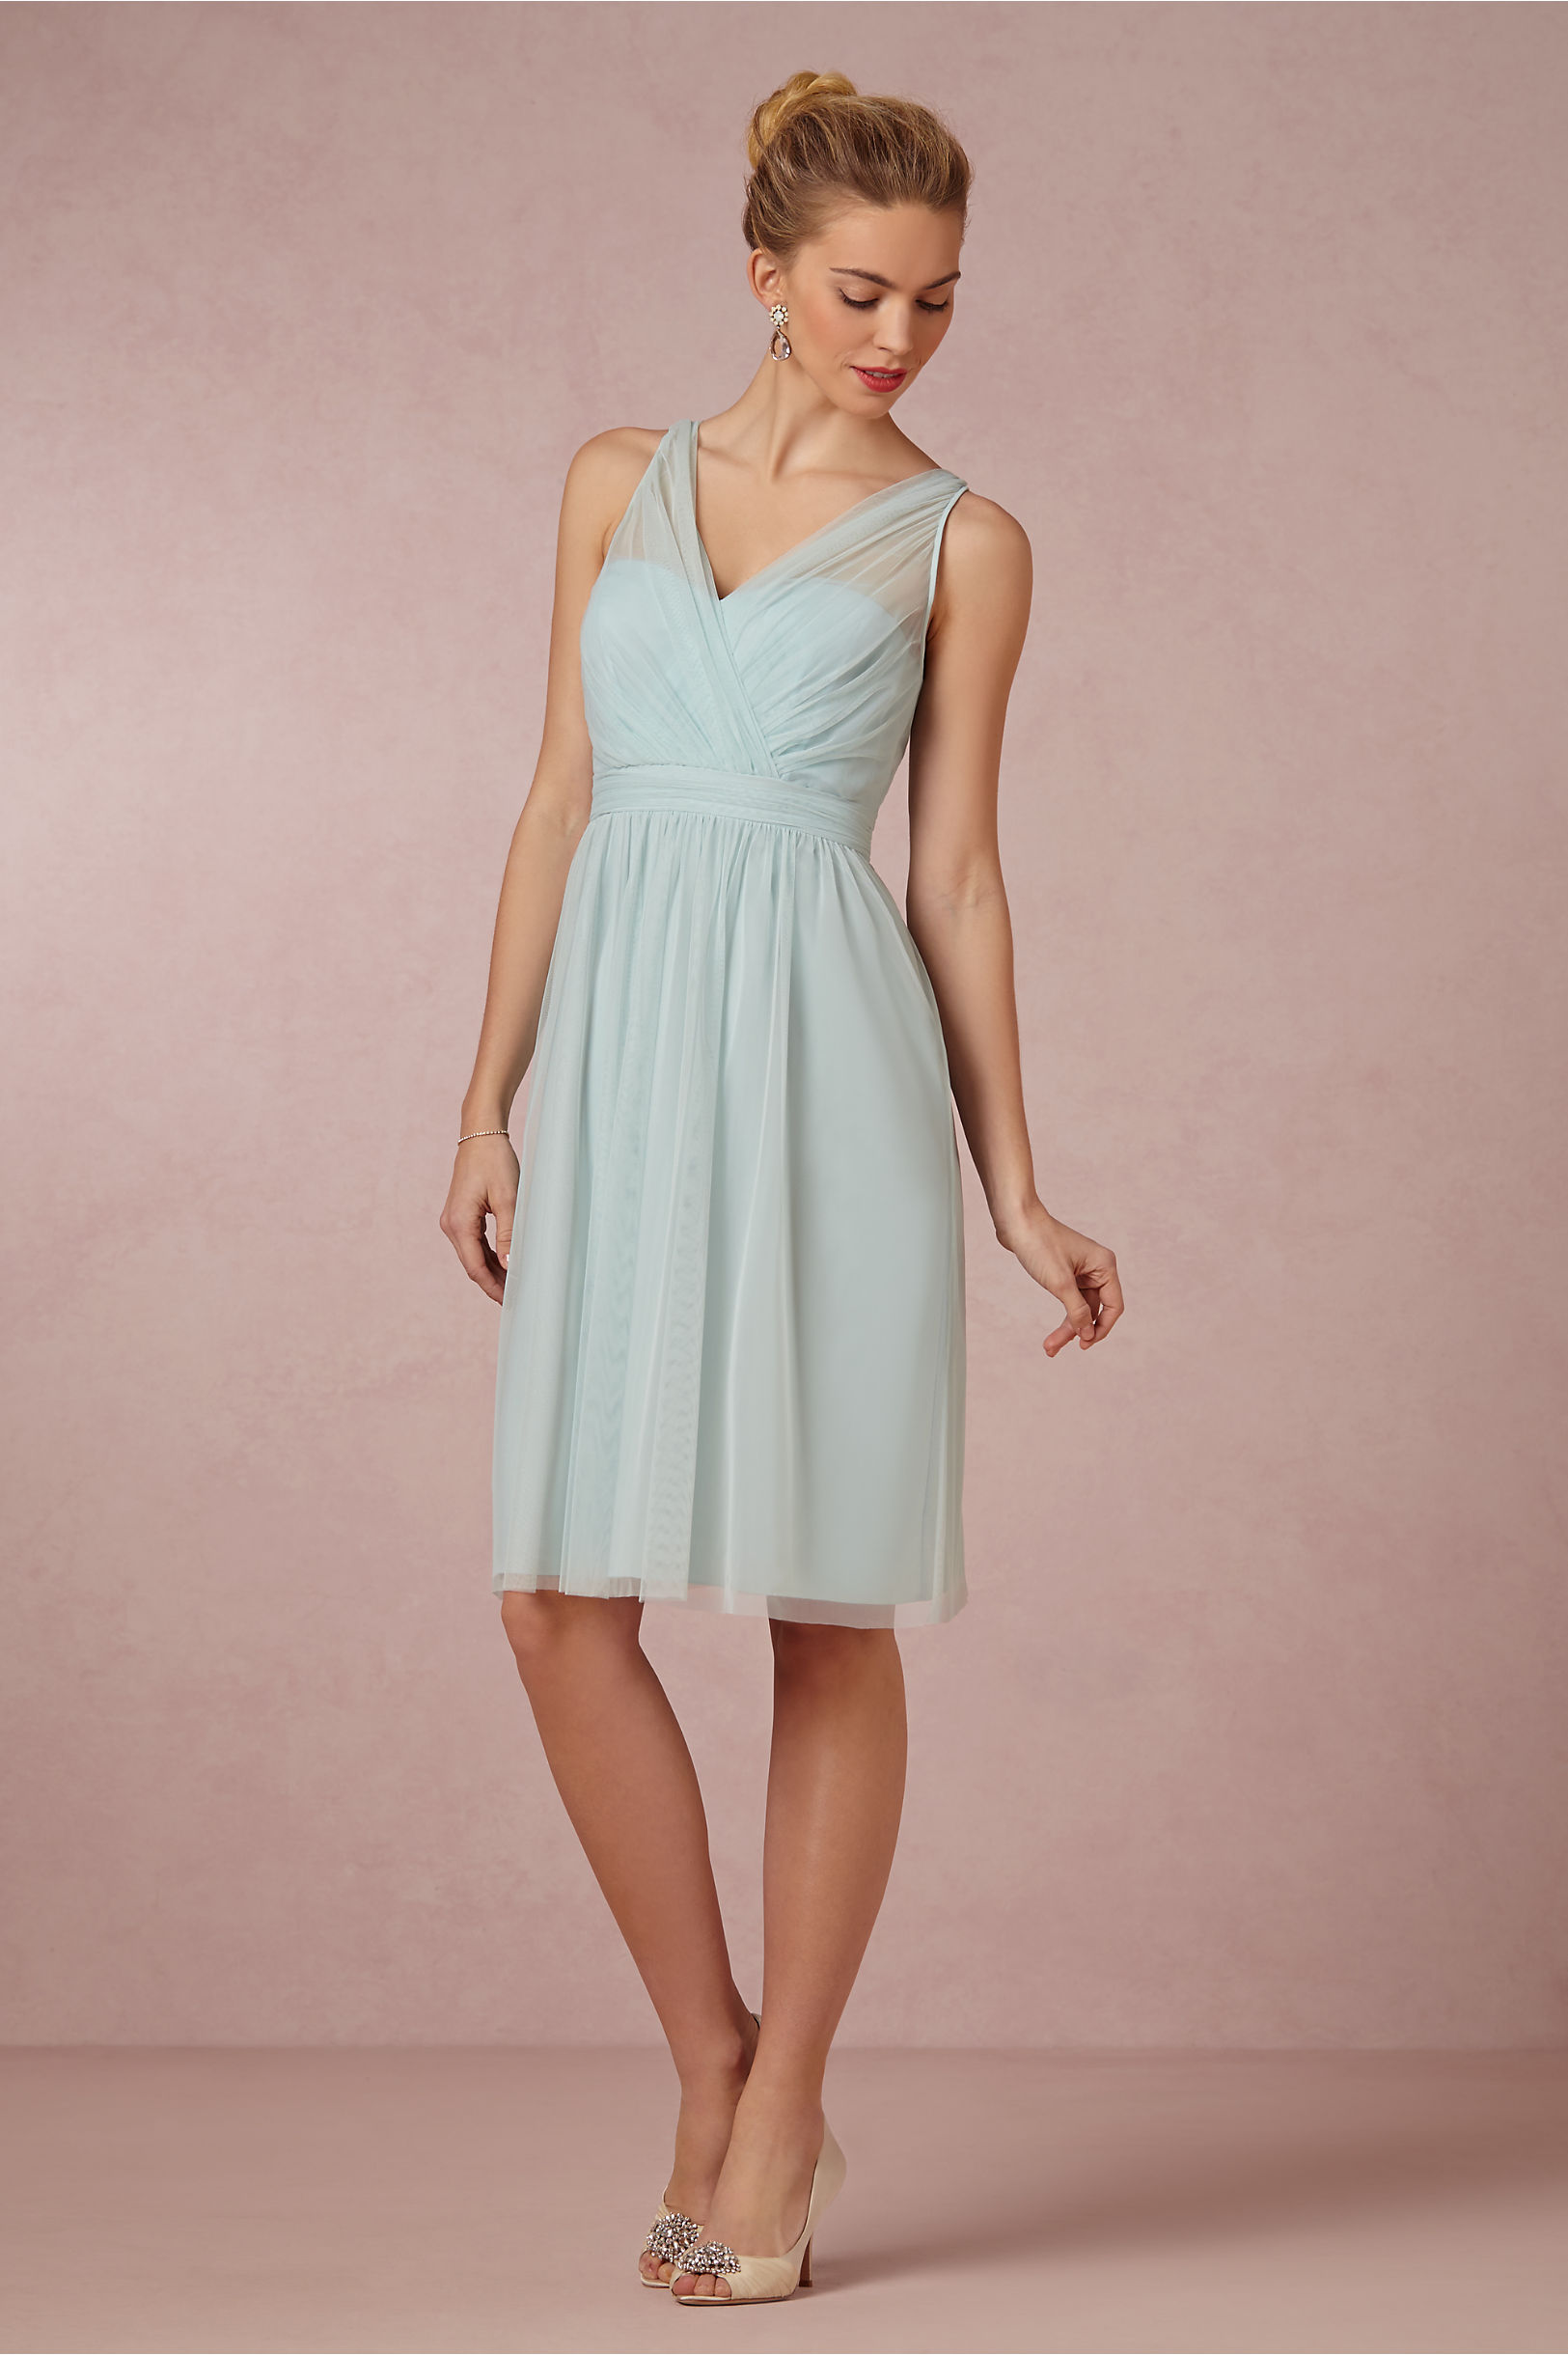 Tansy dress in bridal party bhldn mint mist tansy dress bhldn ombrellifo Images